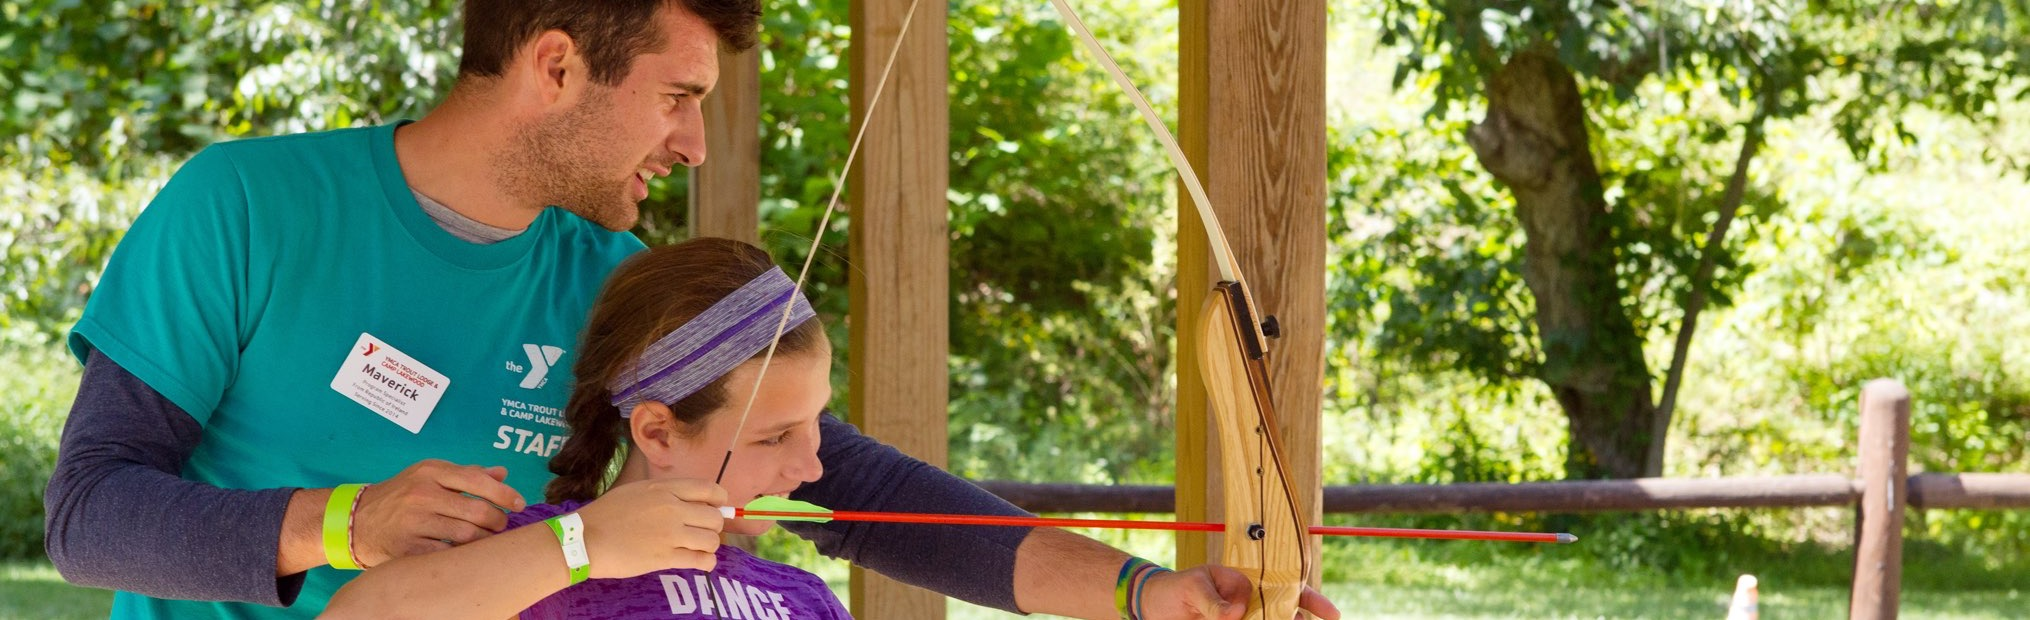 Work as a Counselor at a U.S. Summer Camp